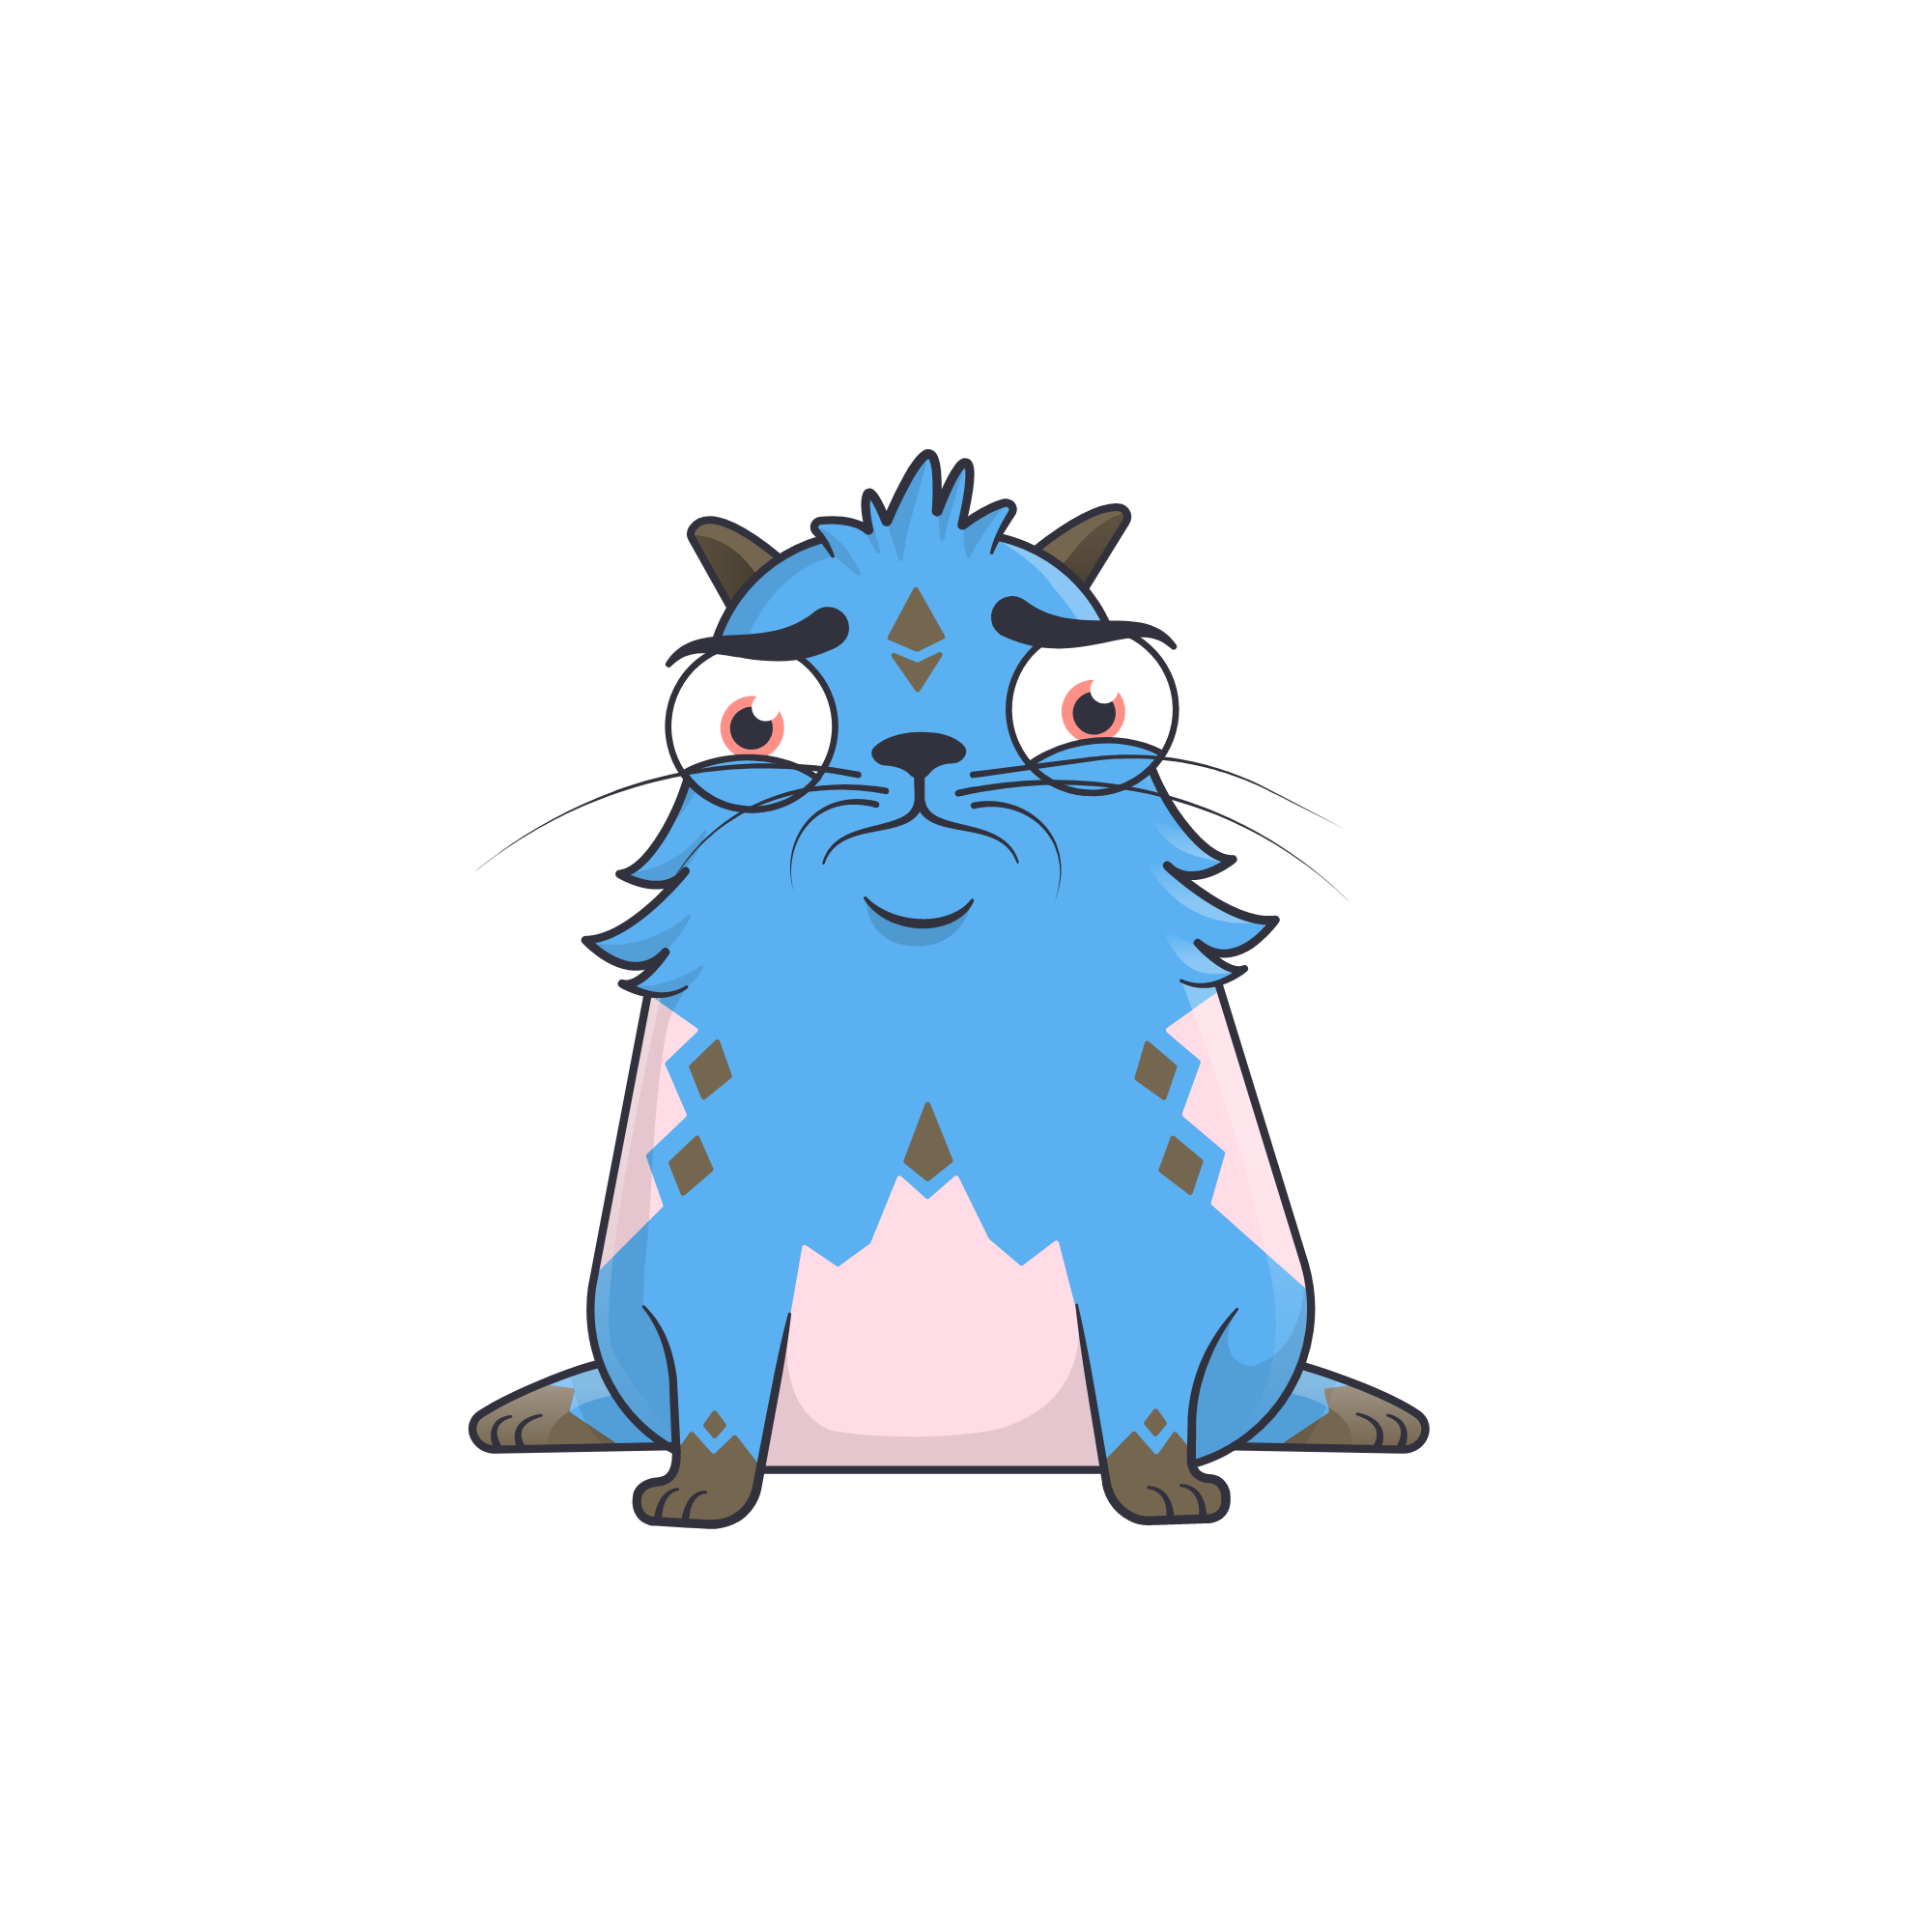 cryptokitty #1147958